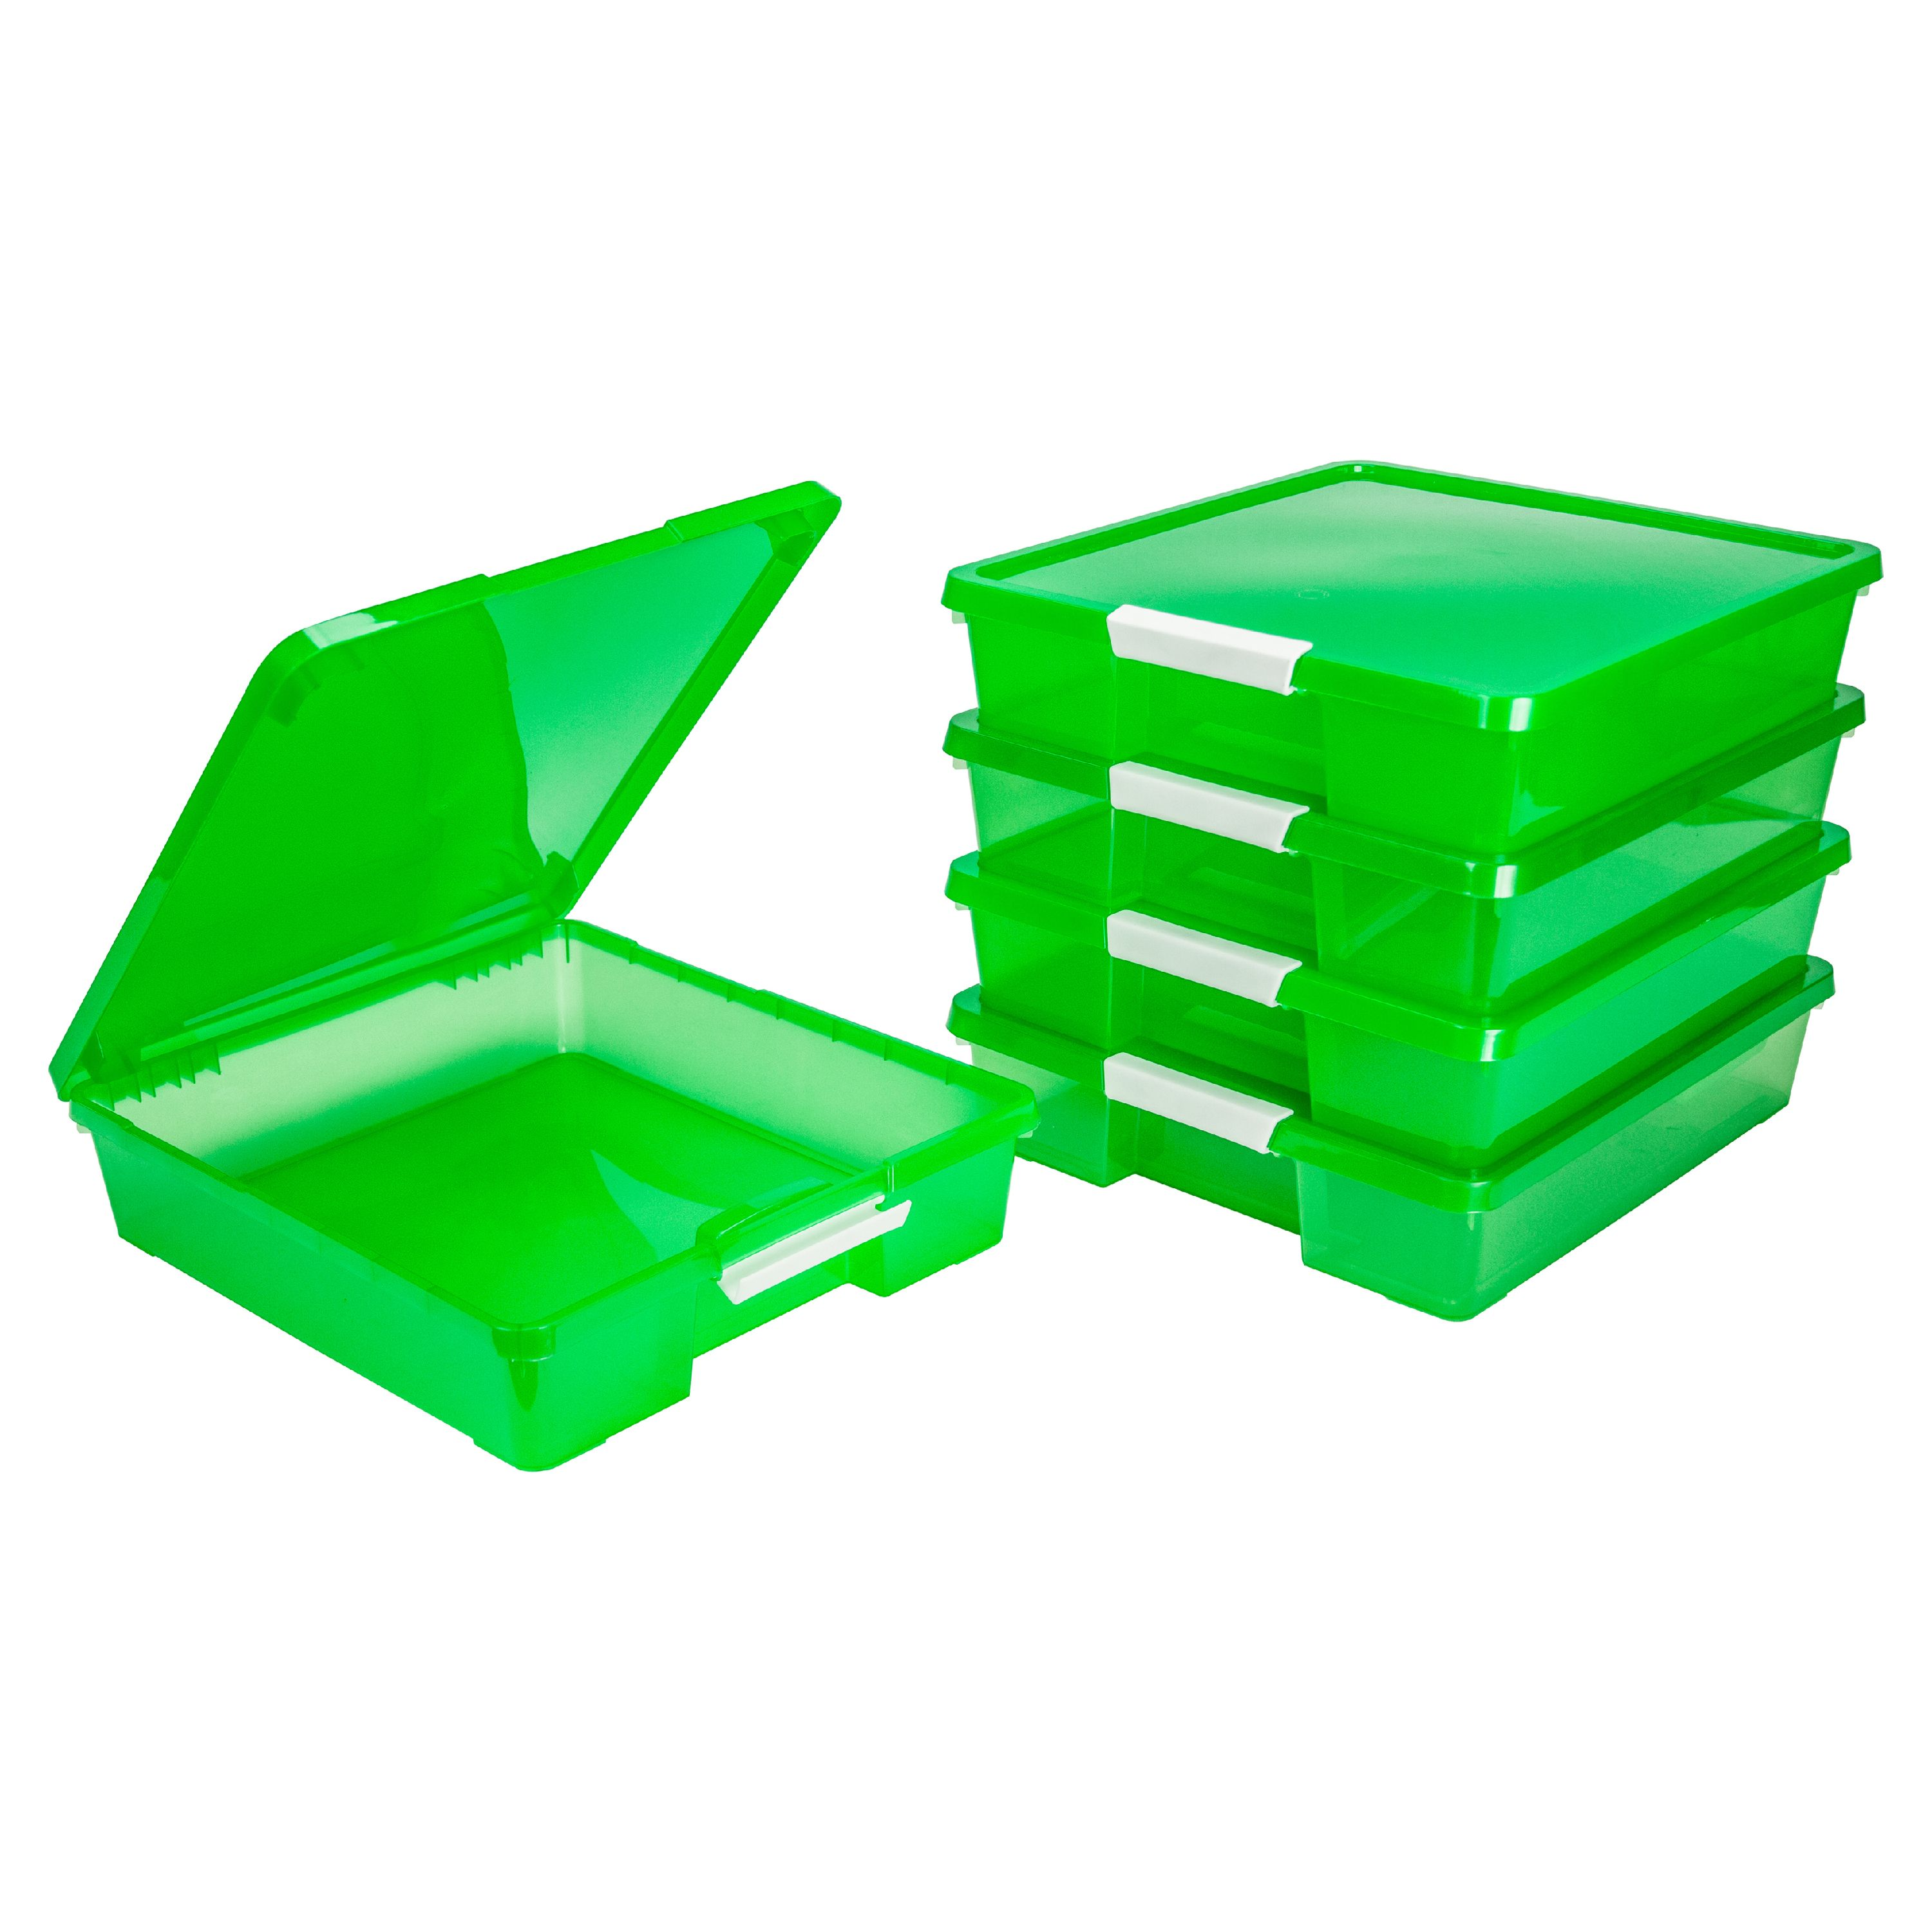 Storex Classroom Student Project Box, 12 x 12 Inches, Transparent Green, 5-Pack